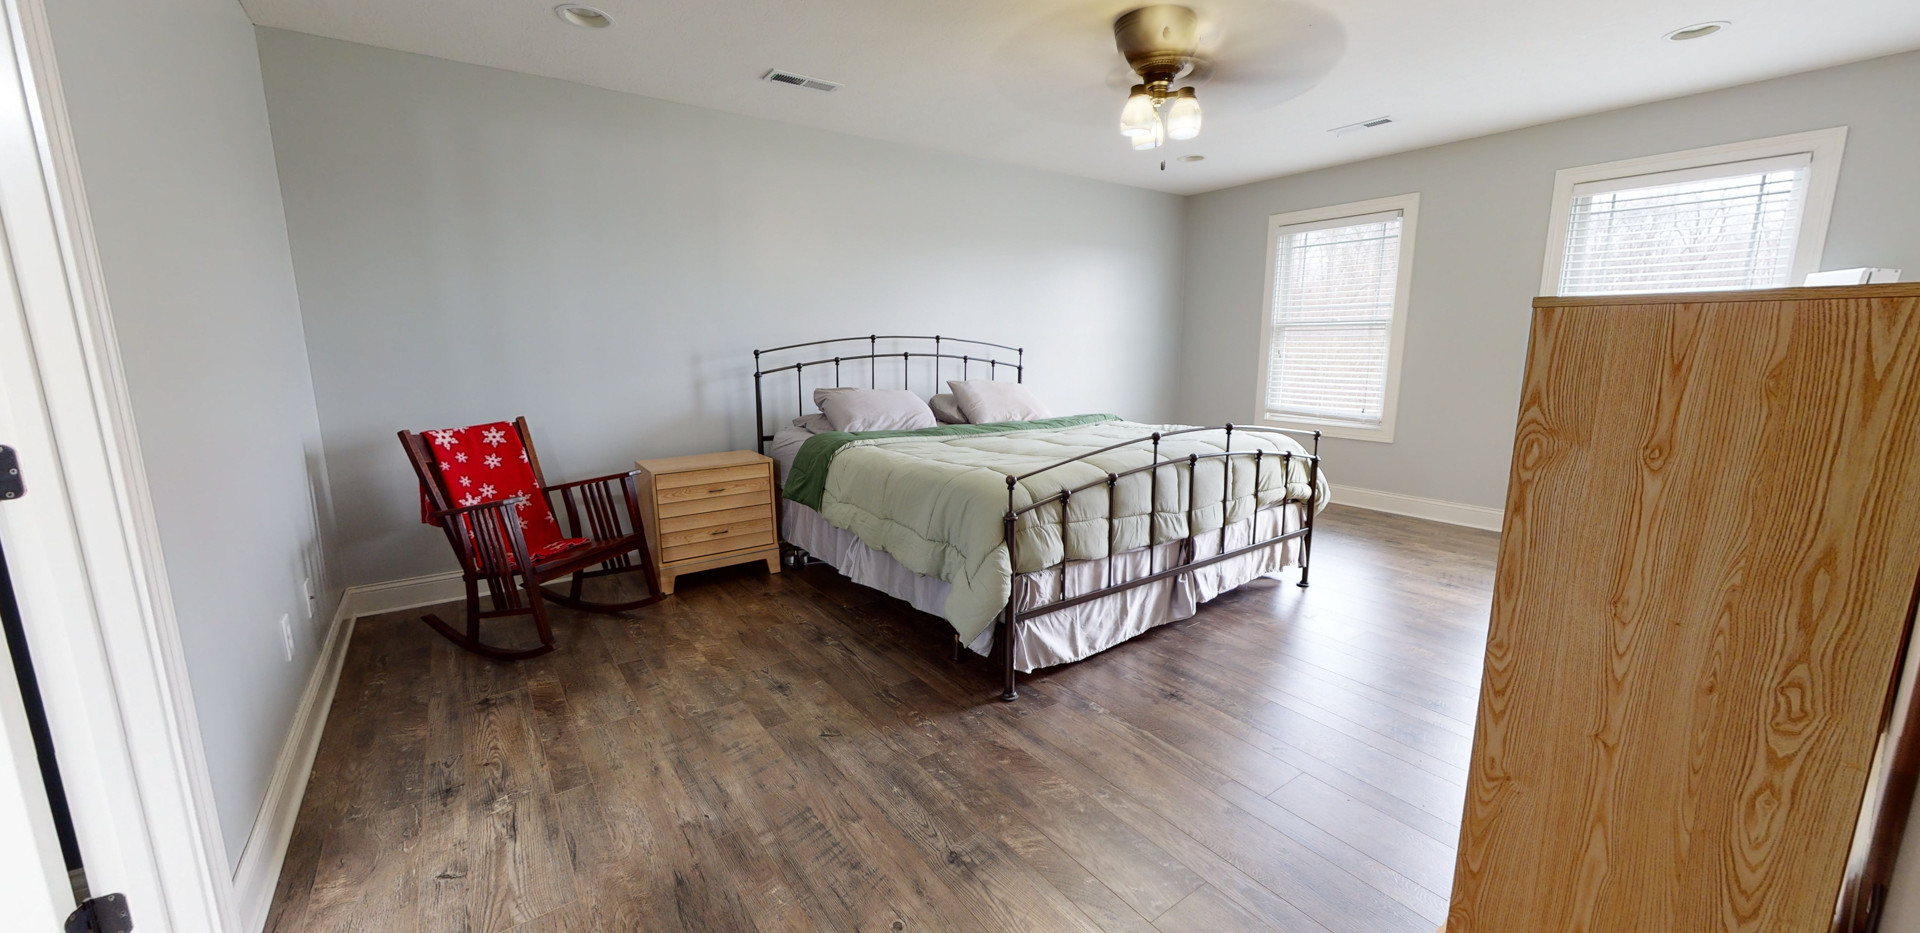 Simple master bedroom with sand colored natural wood floors